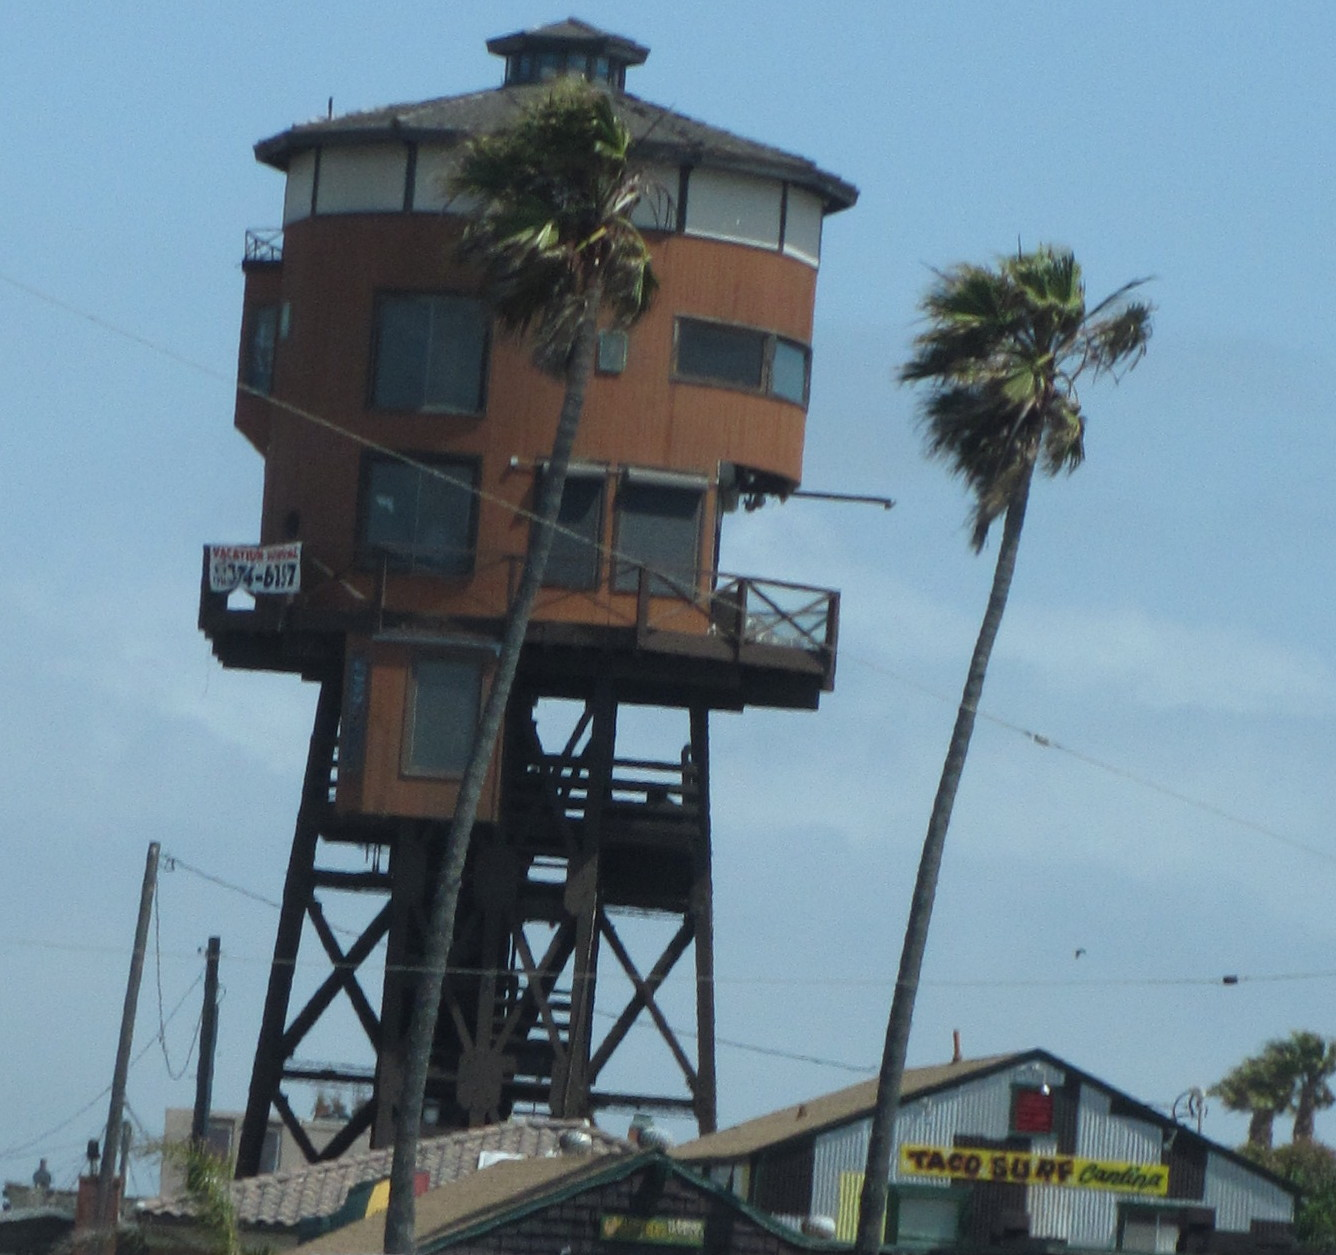 Water Tower Homes Cruisin Over Sixty Driving Down Pch In Huntingtonbeach California